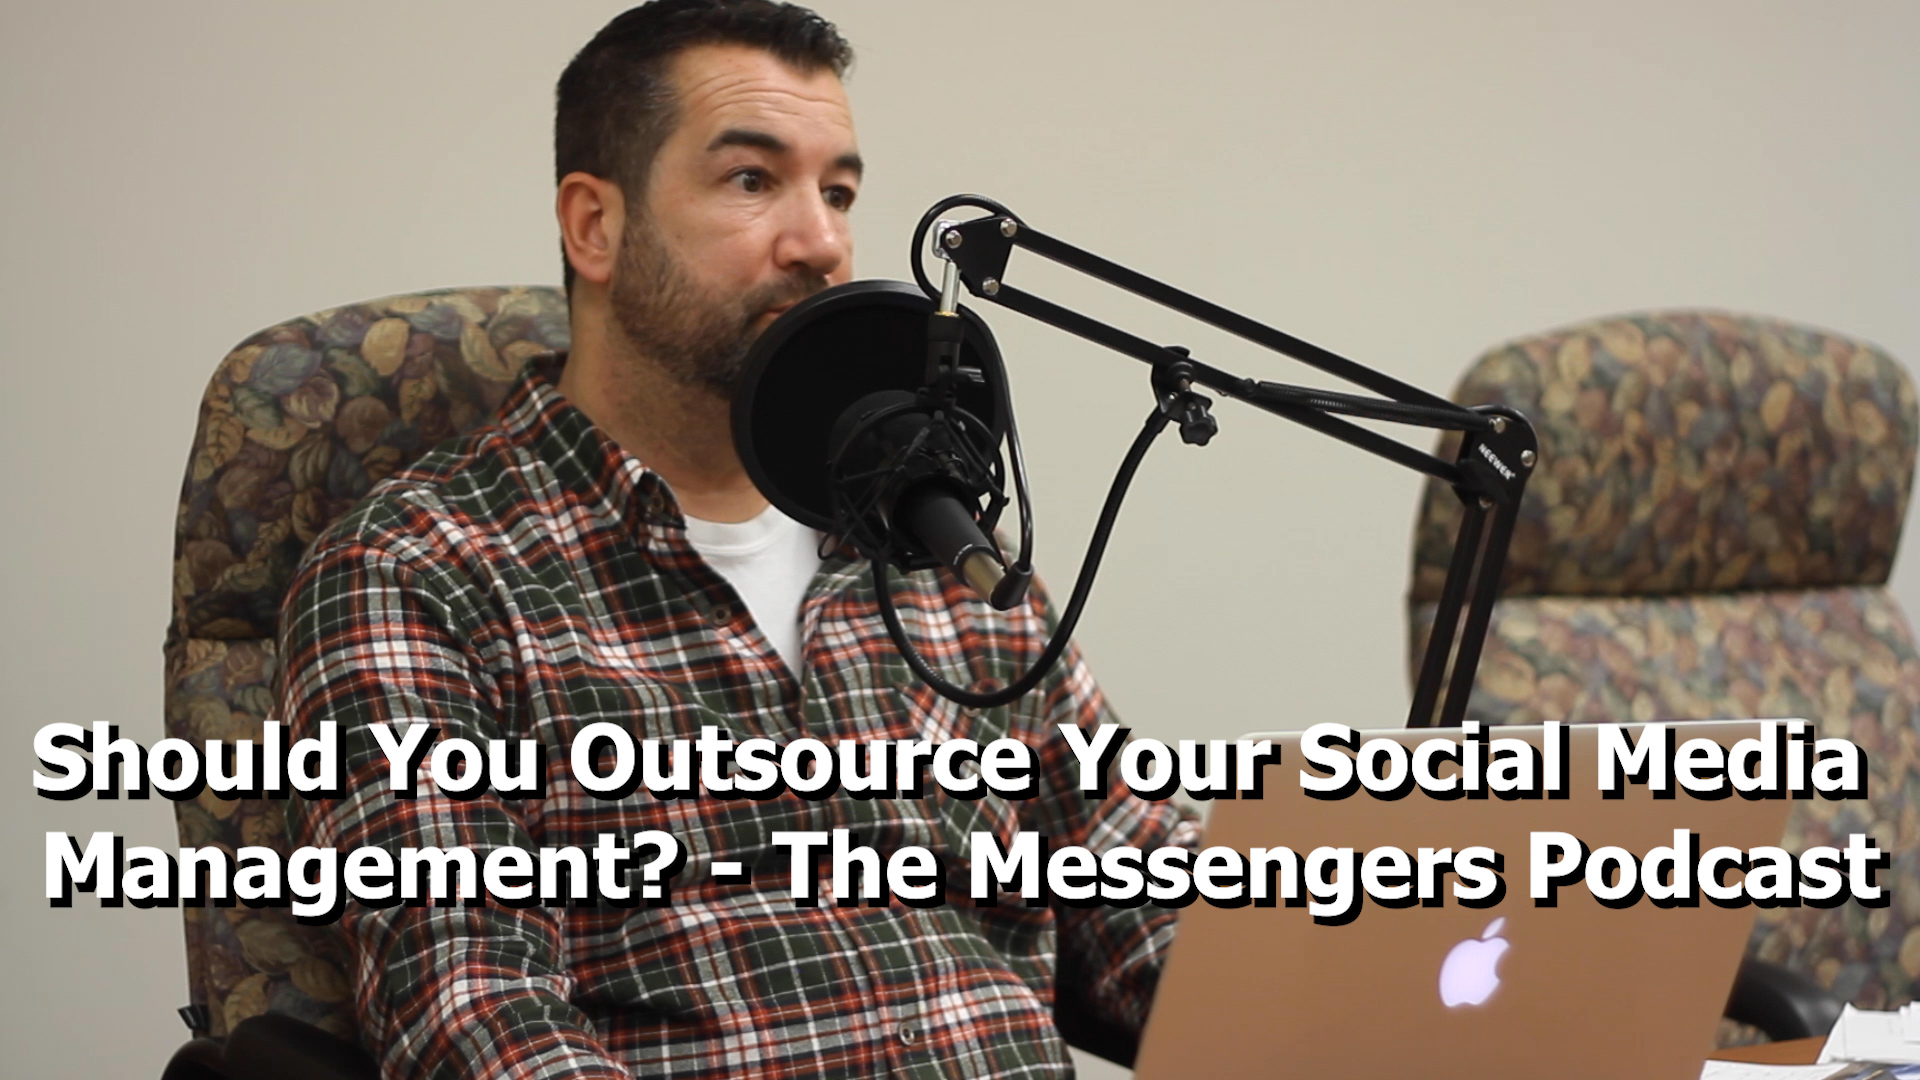 Should You Outsource Your Social Media Management? - The Messengers